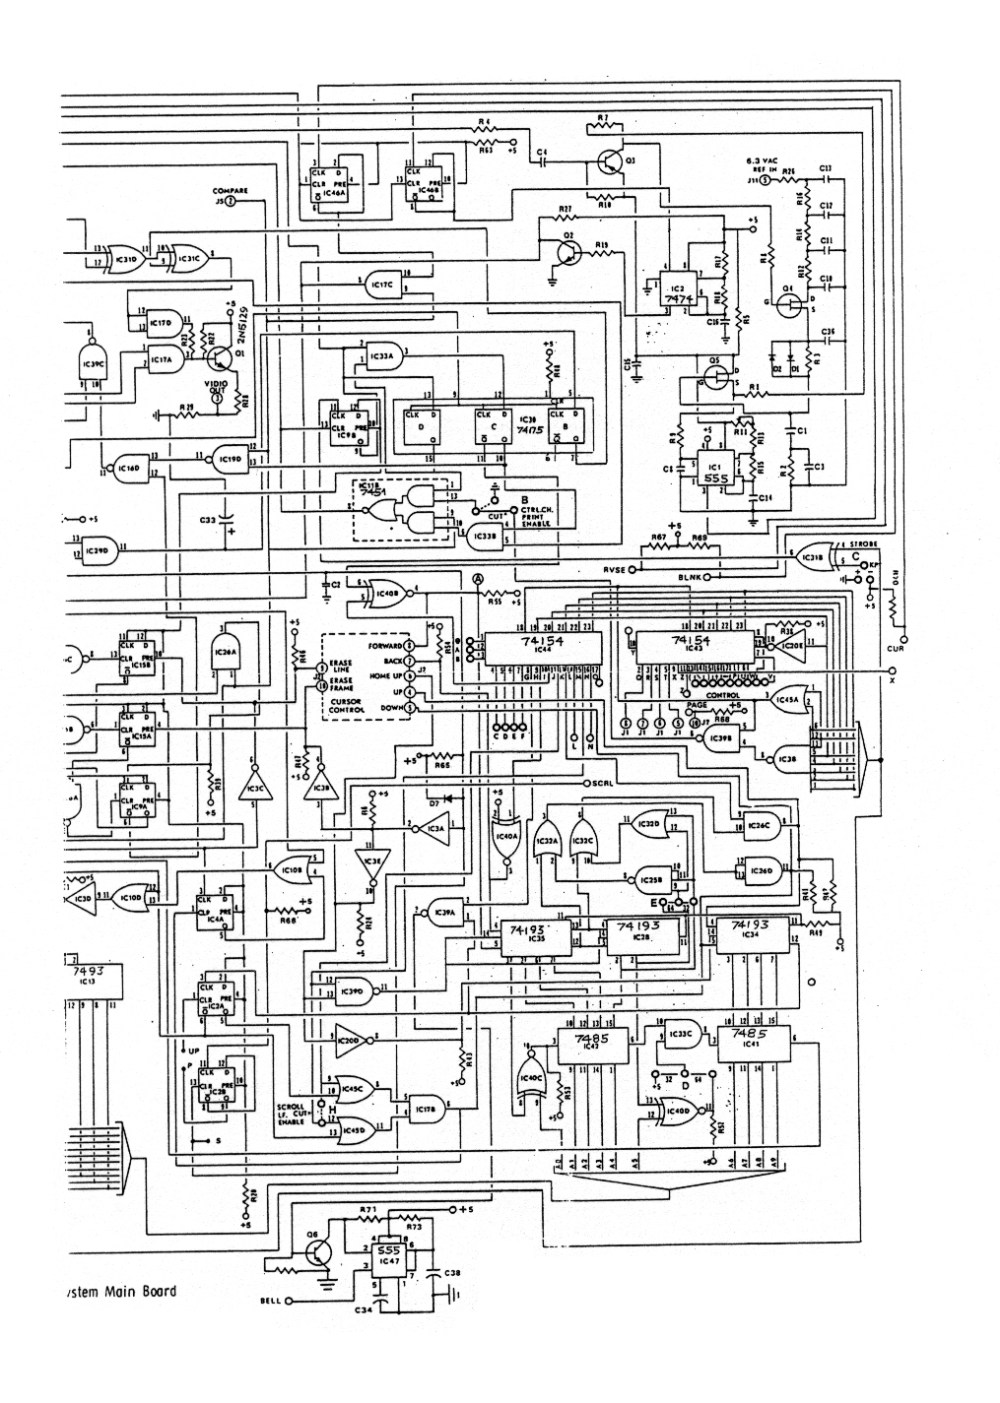 medium resolution of 1996 international 4700 wiring diagram simple wiring diagram rh 45 mara cujas de 2001 international 4700